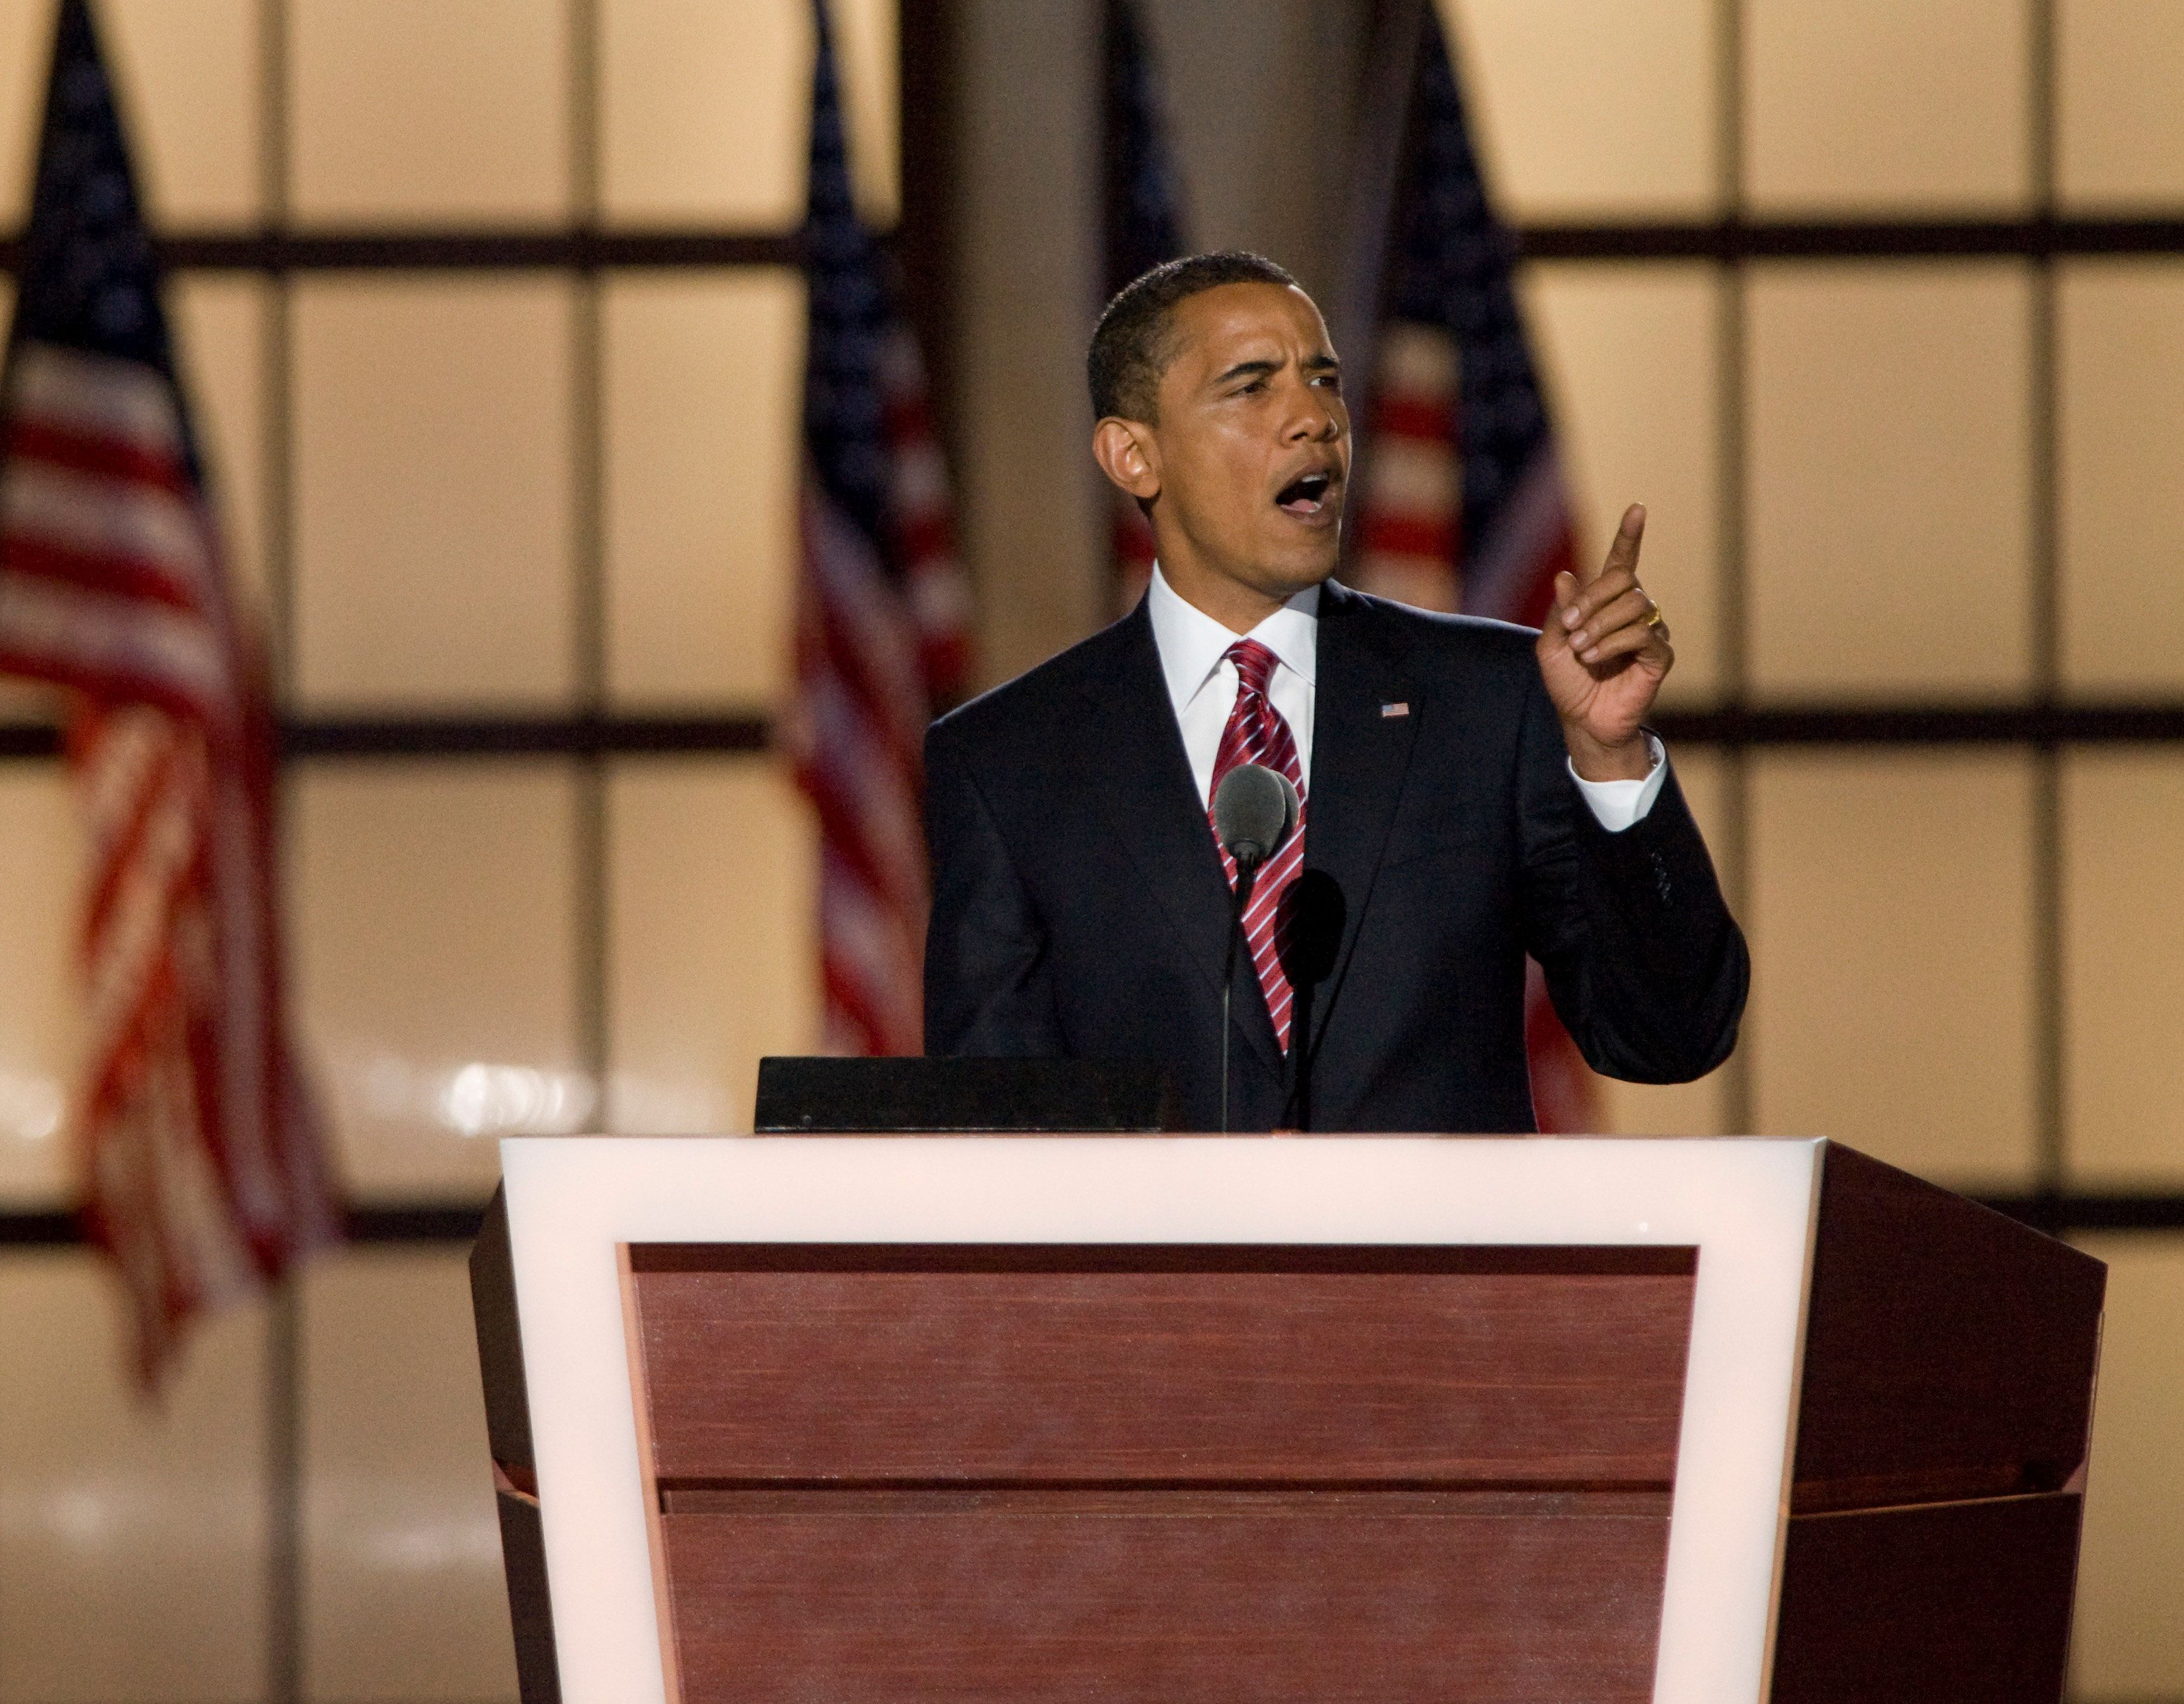 UNITED STATES - AUGUST 28:  Democratic Presidential nominee Barack Obama speaks during the 2008 Democratic National Convention at Invesco Field in Denver, Colo., on Aug. 28, 2008.  (Photo By Bill Clark/Roll Call/Getty Images)